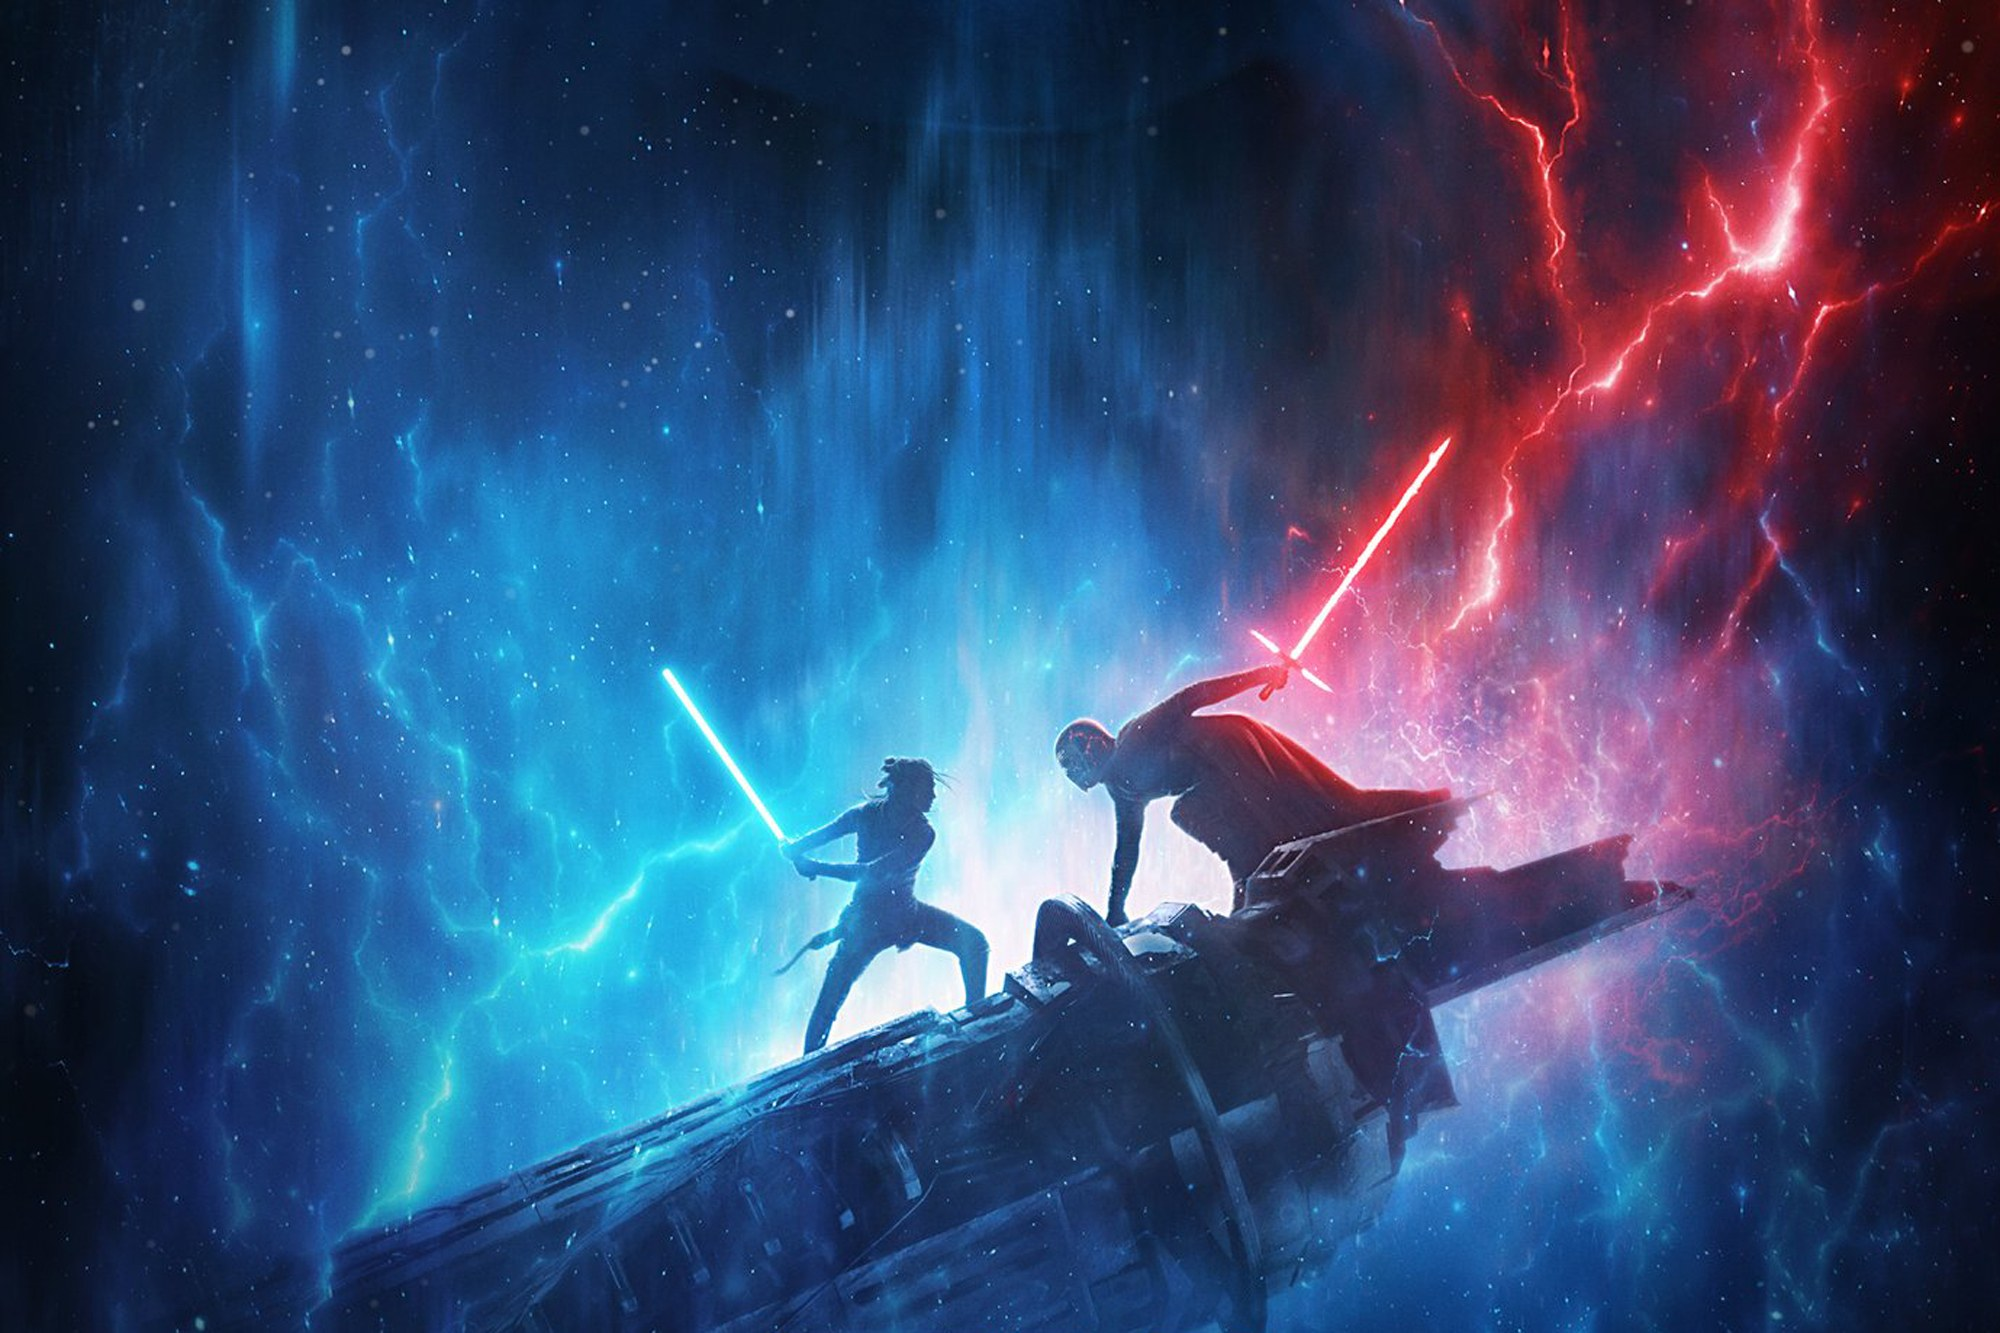 Rey and Kylo Ren fight in The Rise of Skywalker.